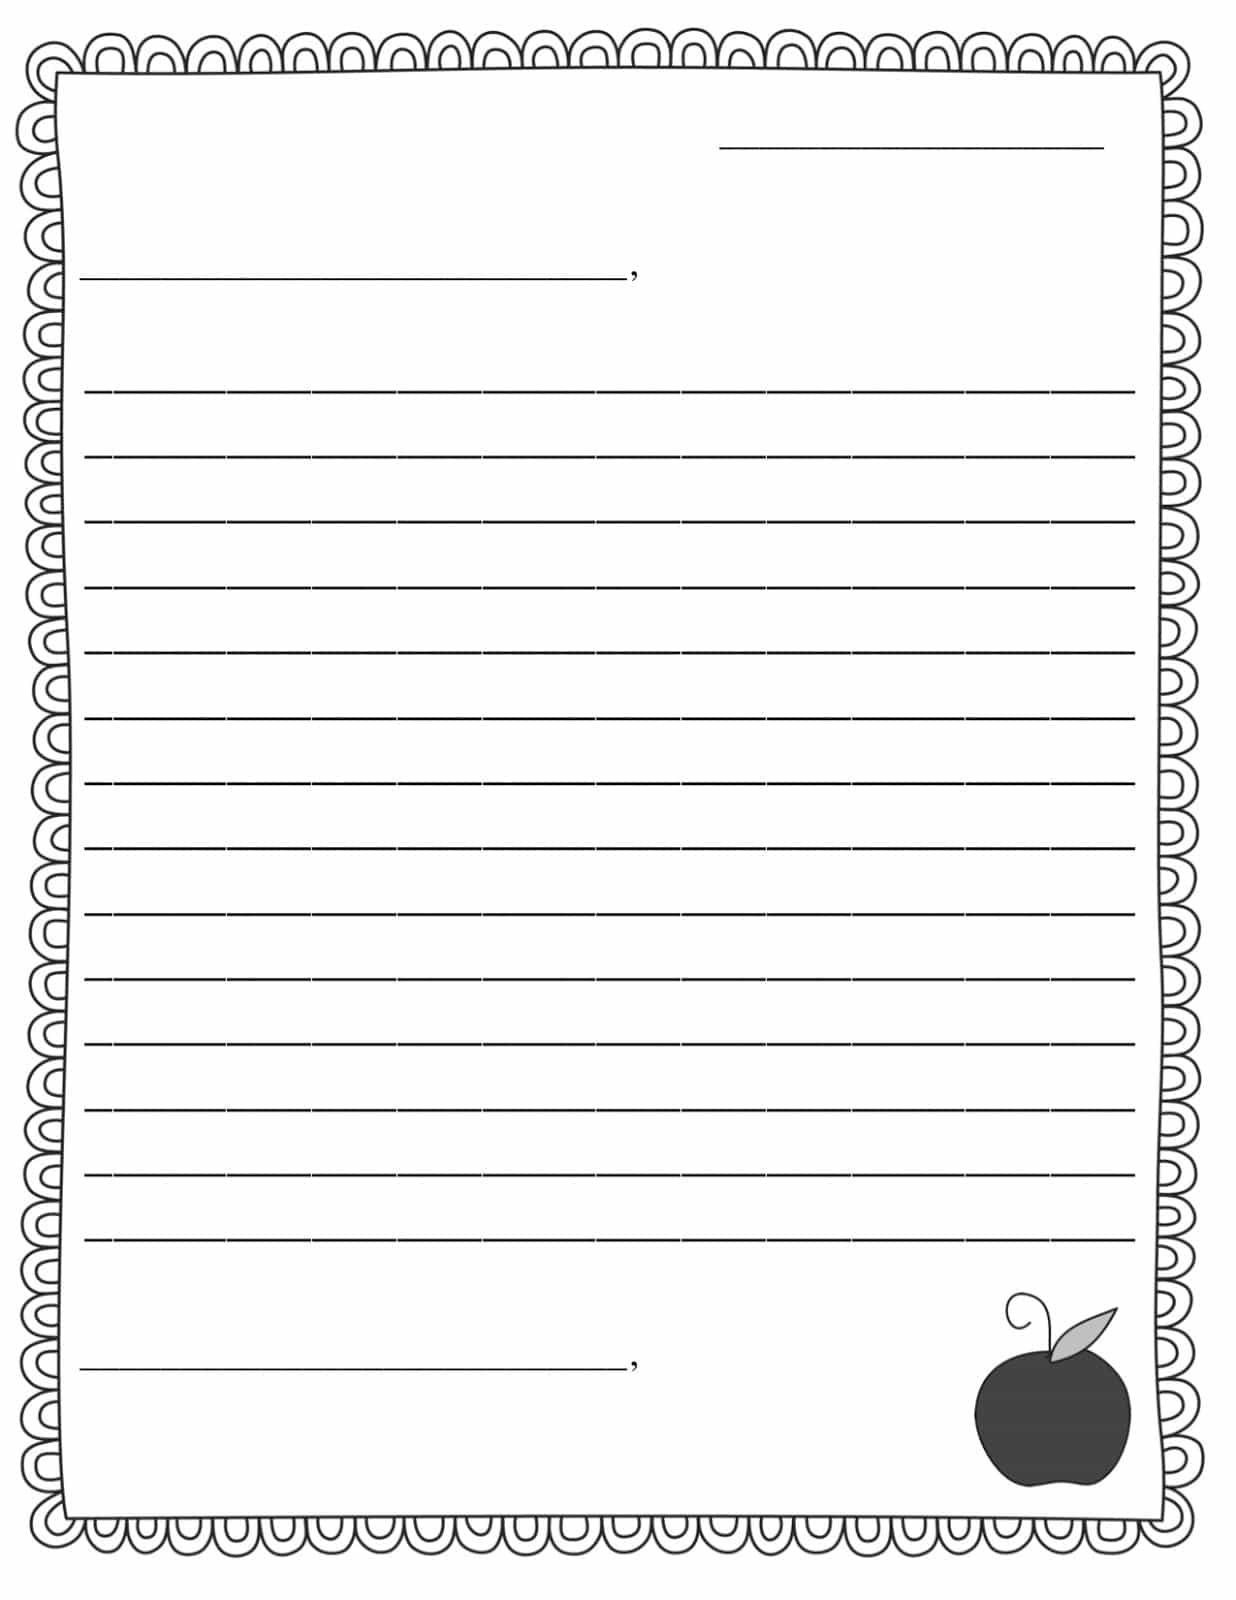 Letter Writing Worksheets For Grade 5 And Alphabet Tracing Worksheets For 3 Year Olds